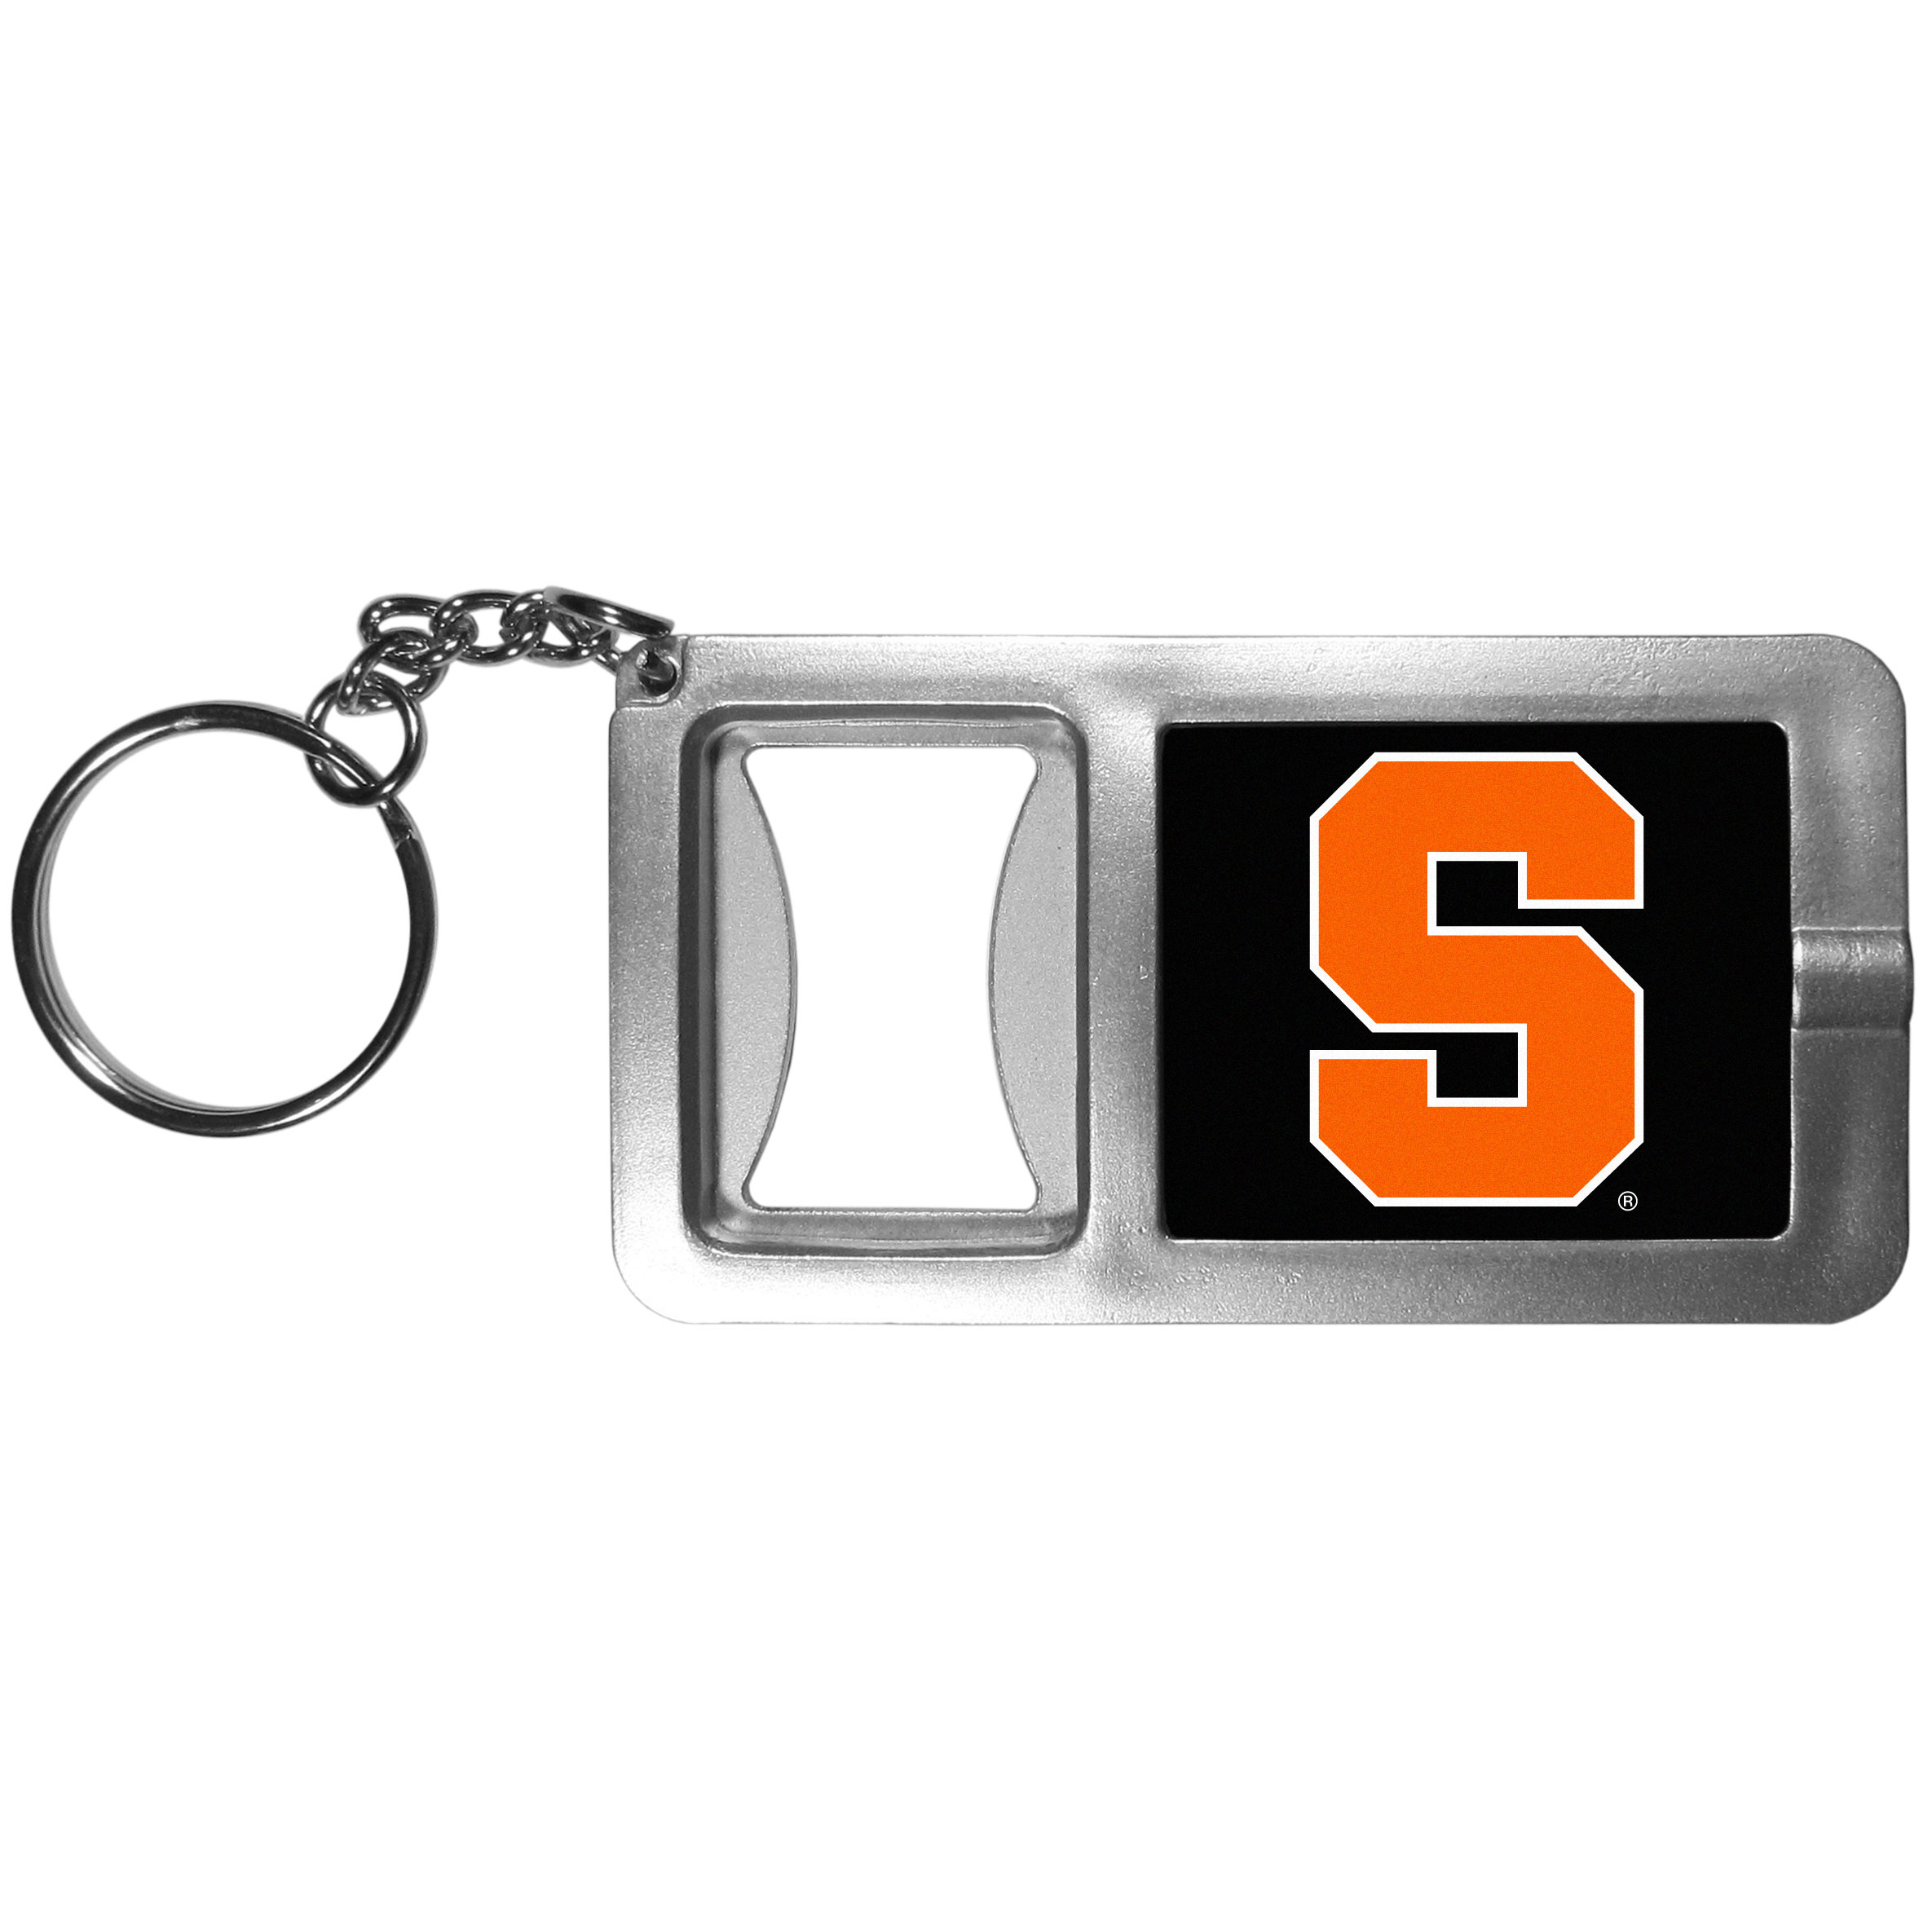 Syracuse Orange Flashlight Key Chain with Bottle Opener - Never be without light with our Syracuse Orange flashlight keychain that features a handy bottle opener feature. This versatile key chain is perfect for camping and travel and is a great way to show off your team pride!